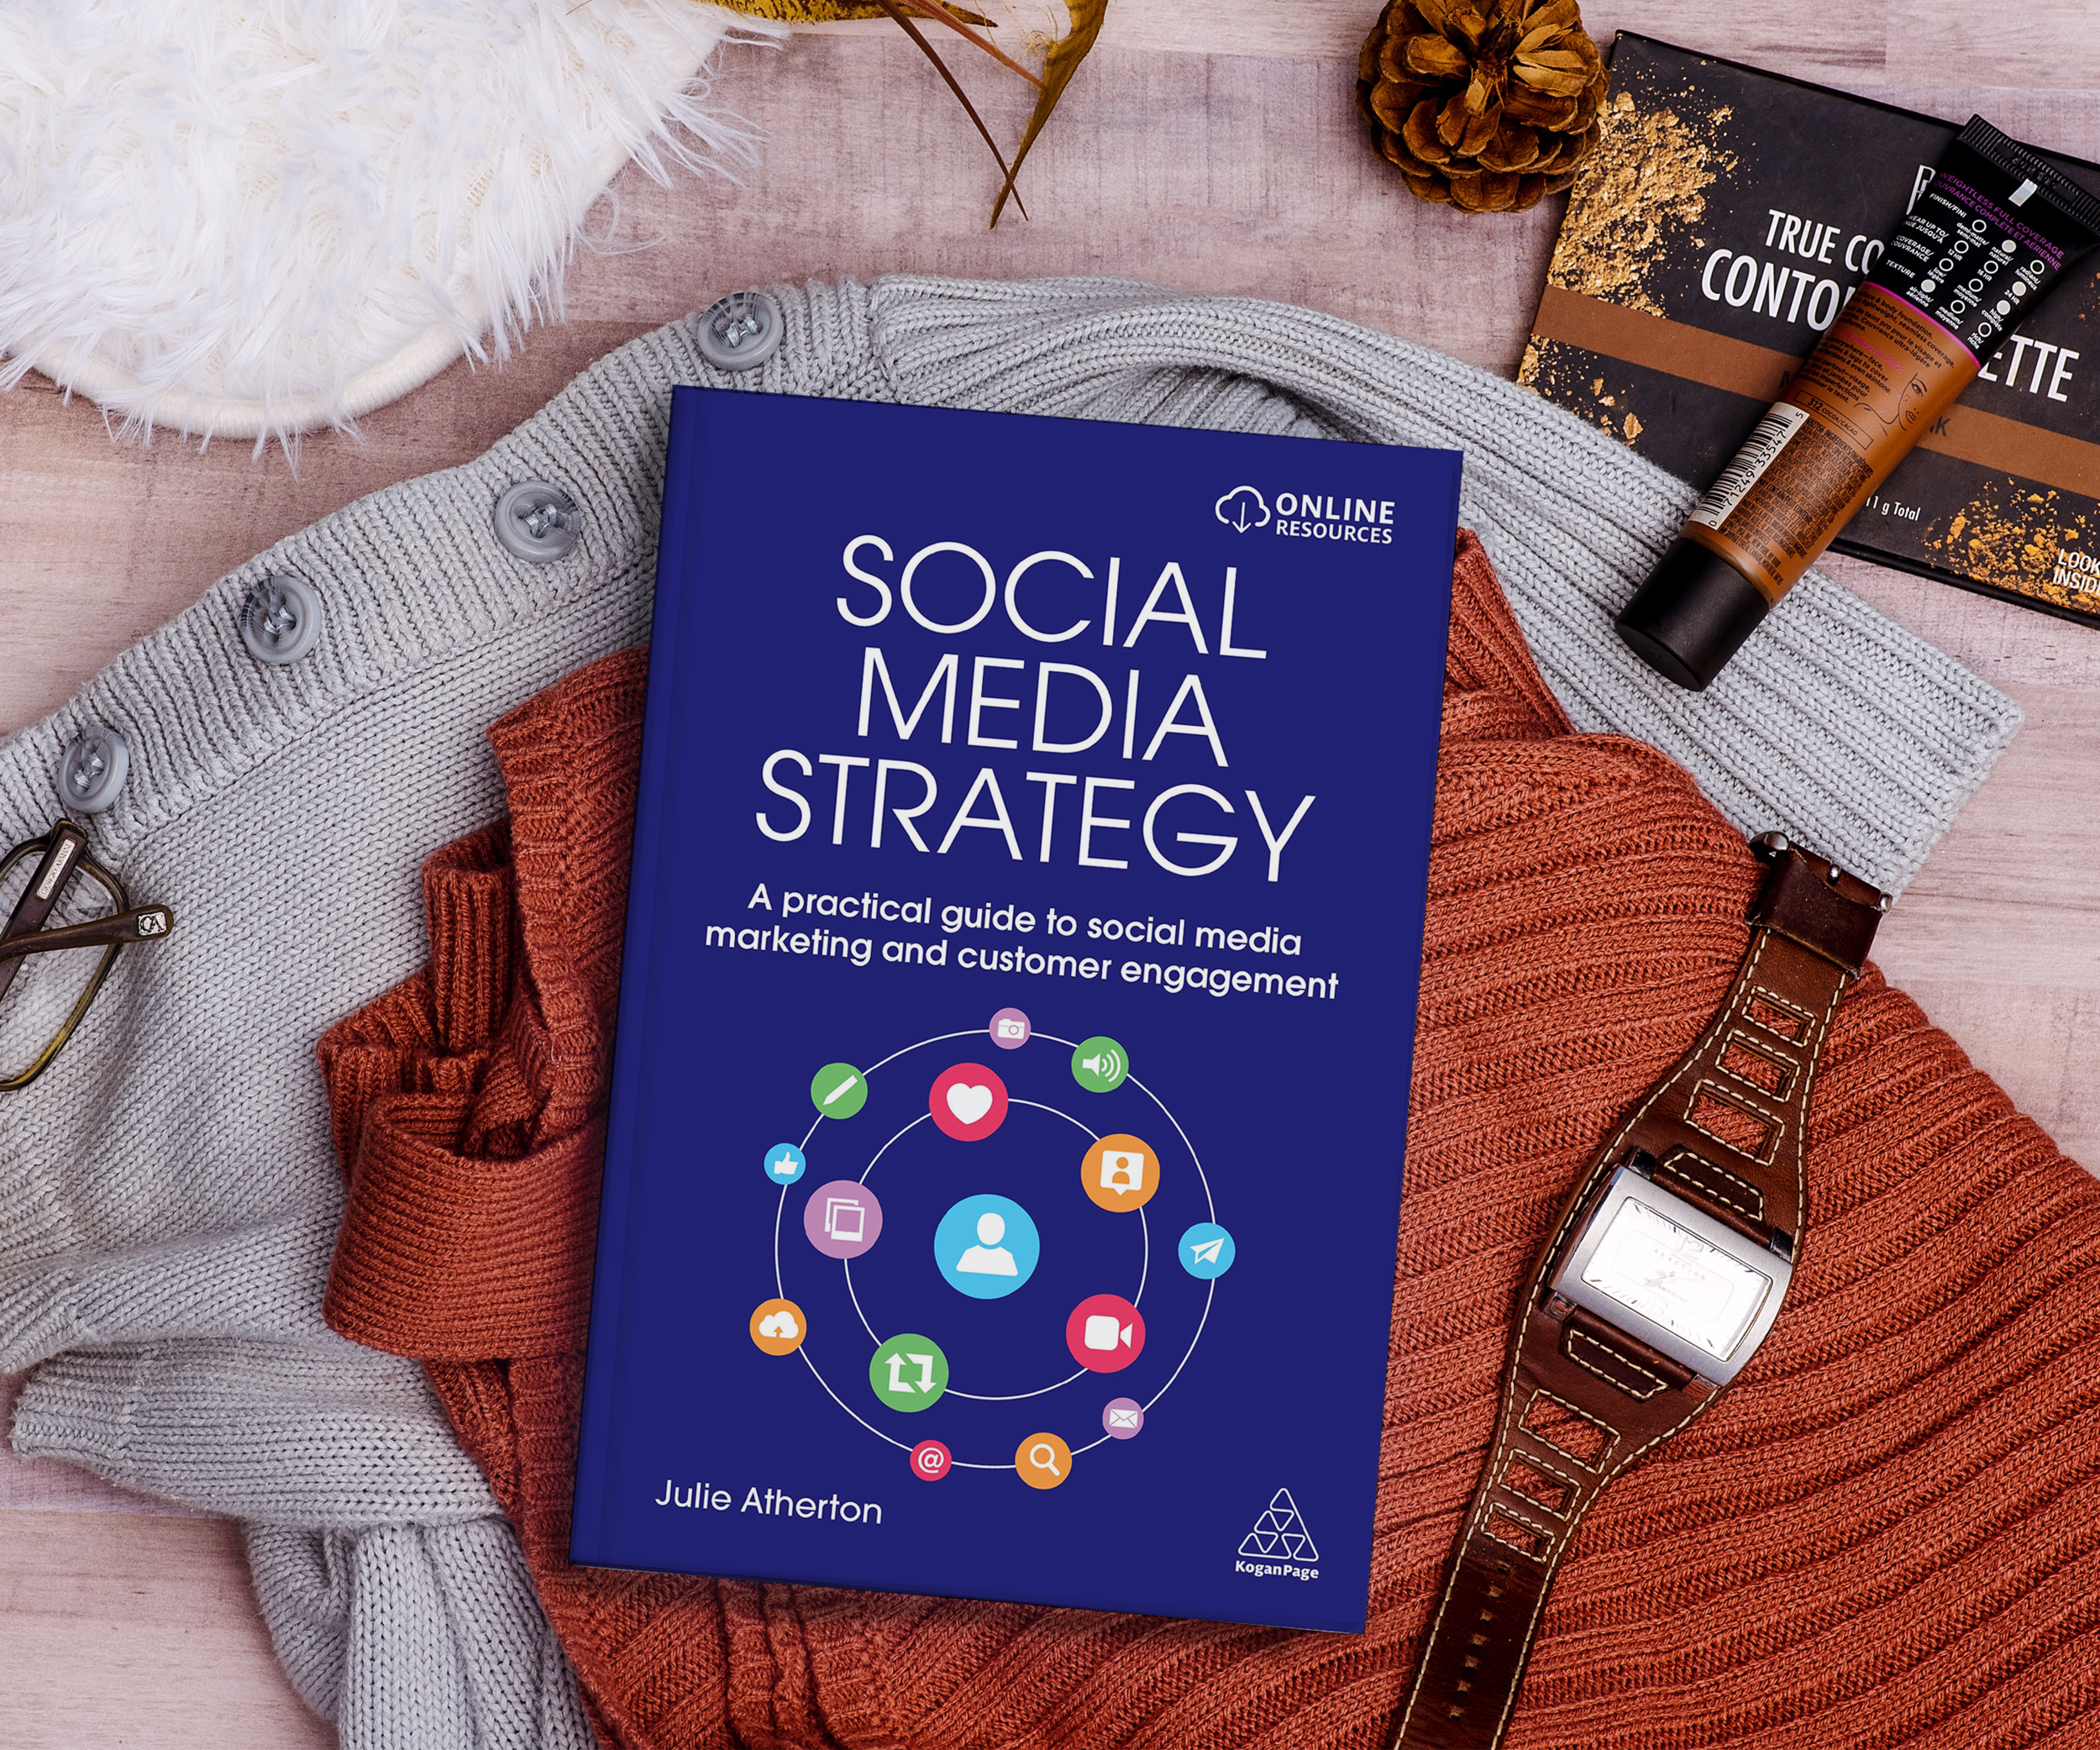 Discover Julie's book - Looking for a simple, structured approach to social media marketing? This is the book for you.